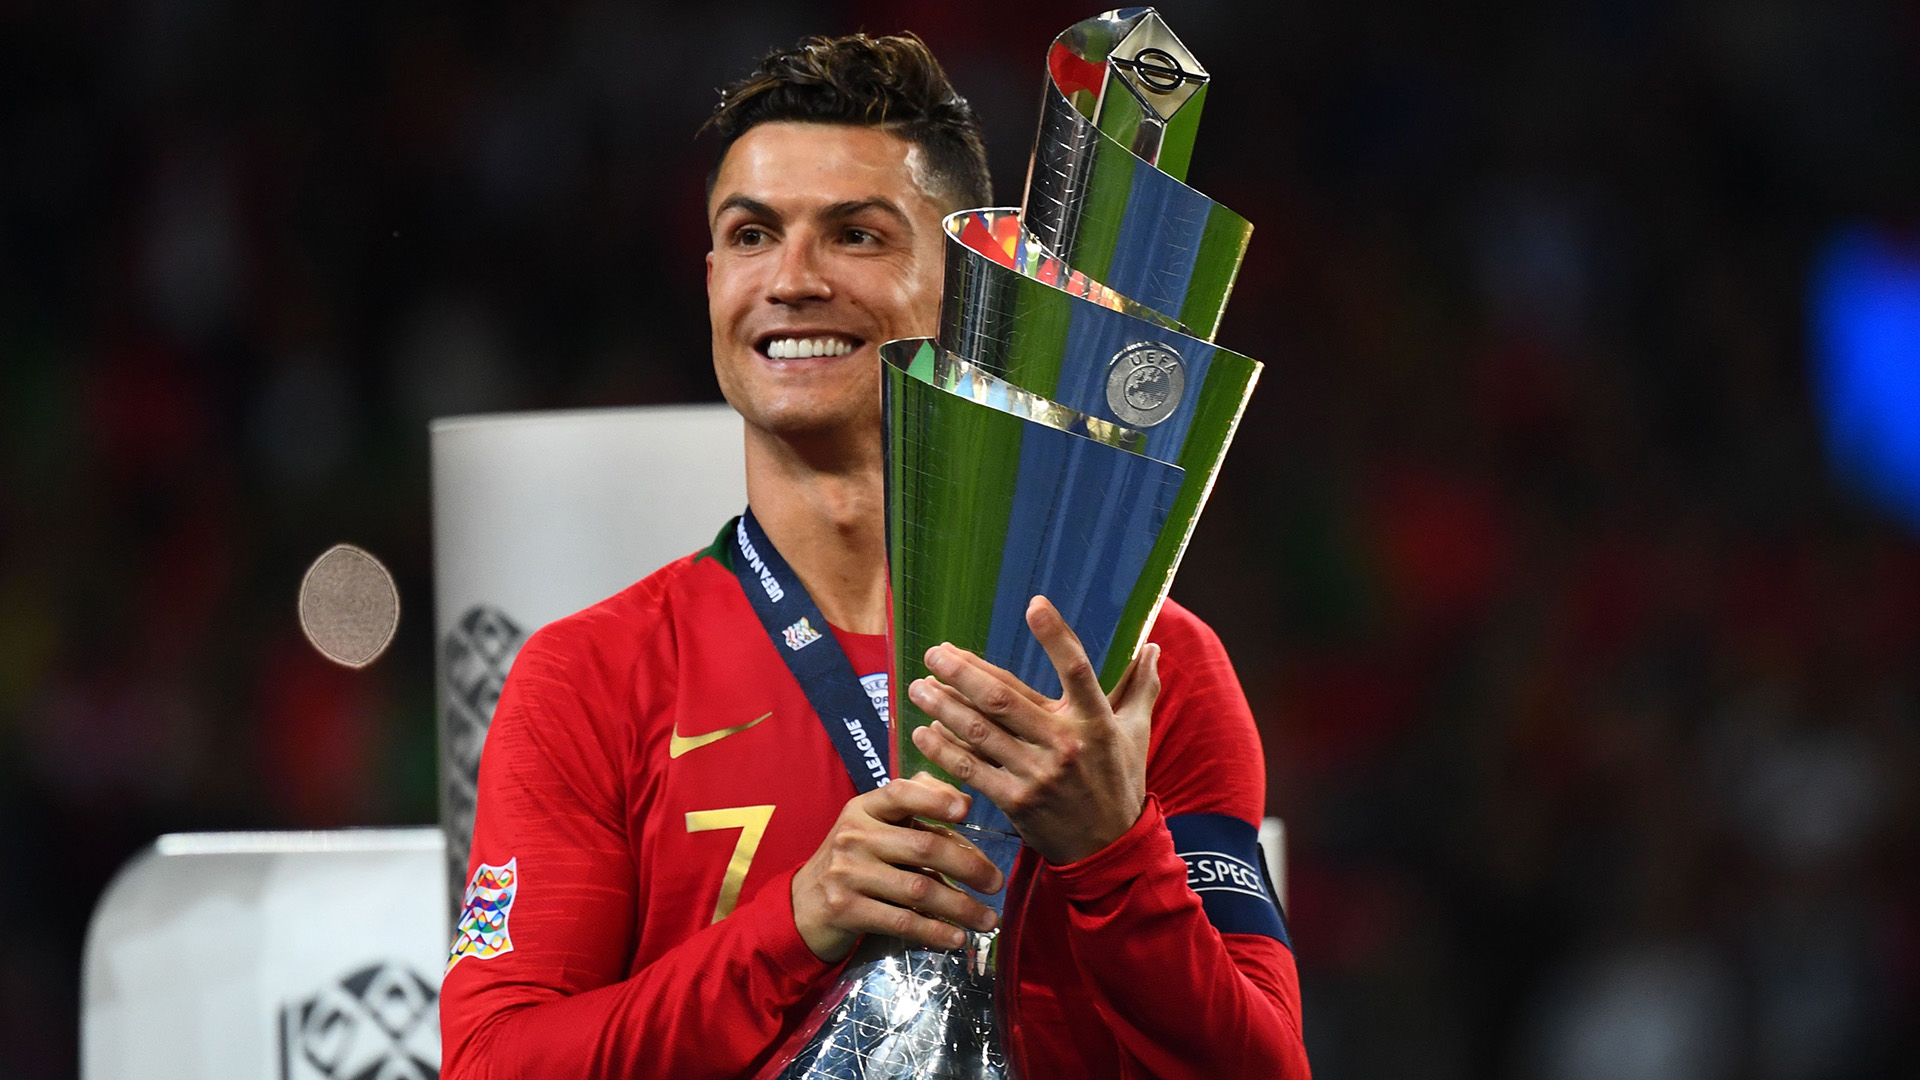 Cristiano Ronaldo Portugal Nations League trophy 2019